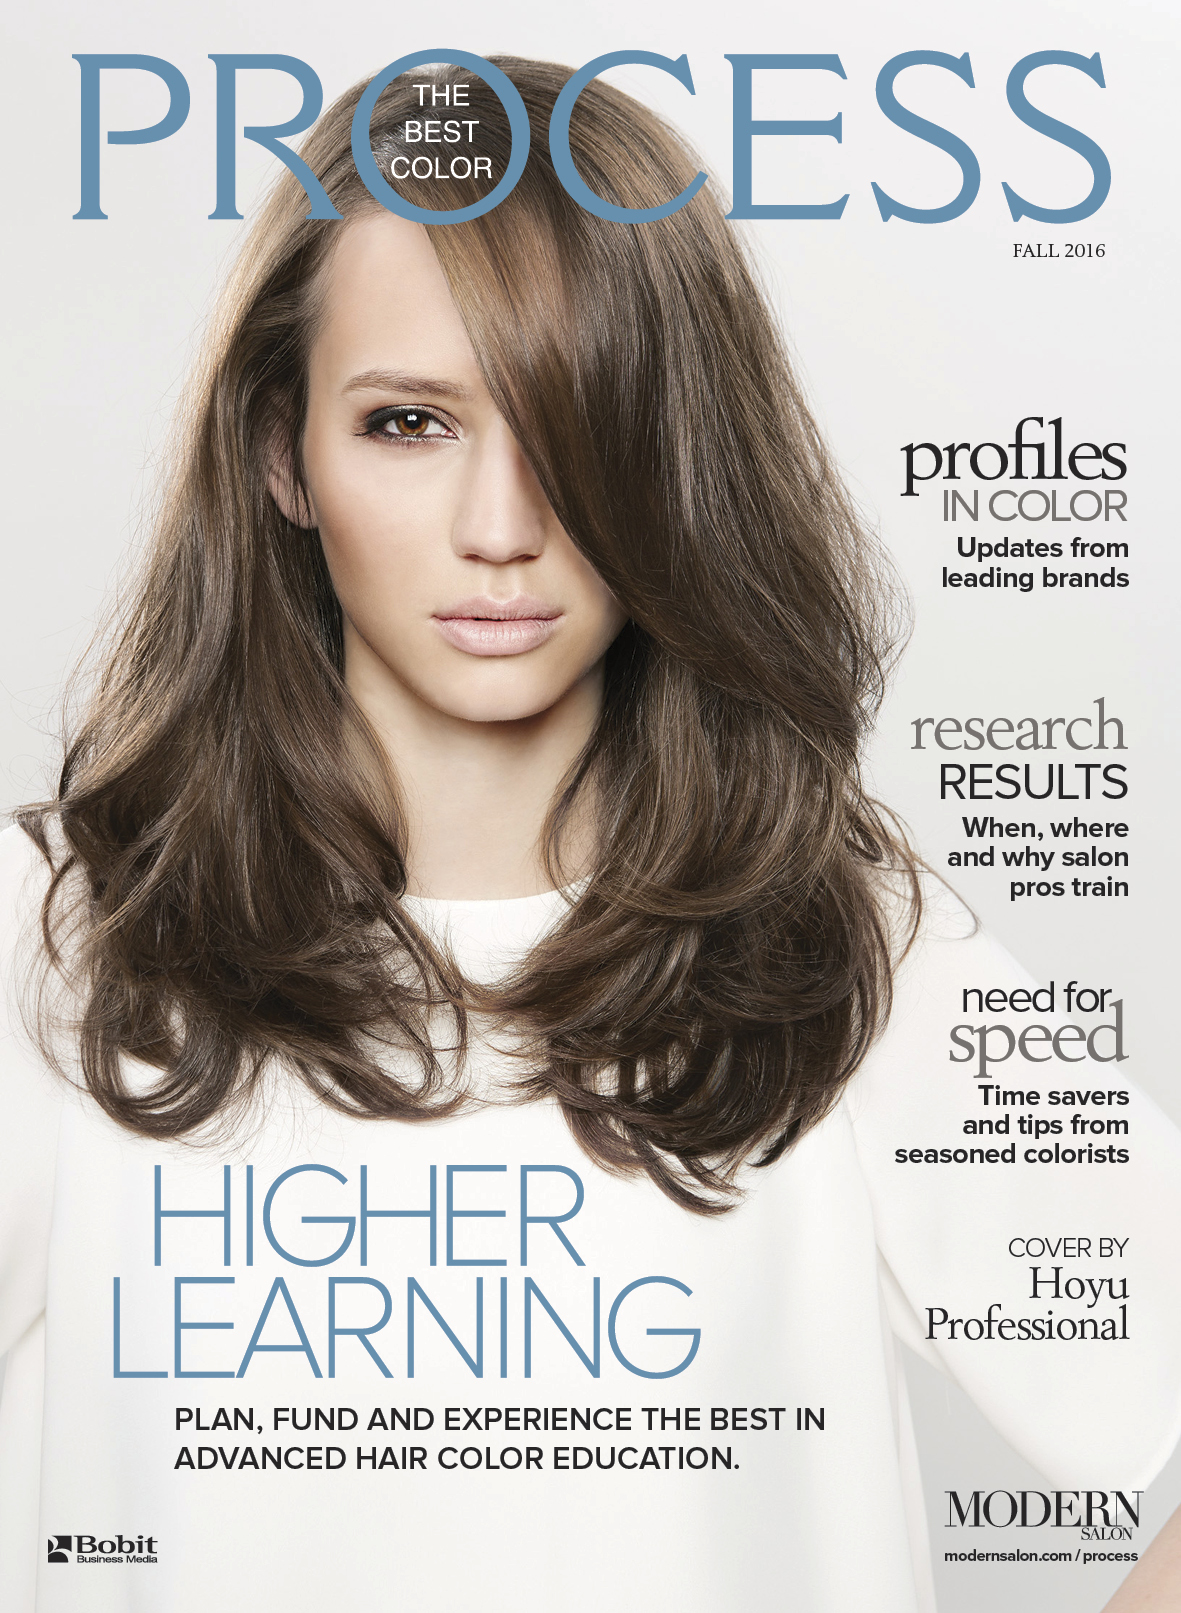 Hoyu Professional Tailors Education to Current Trends